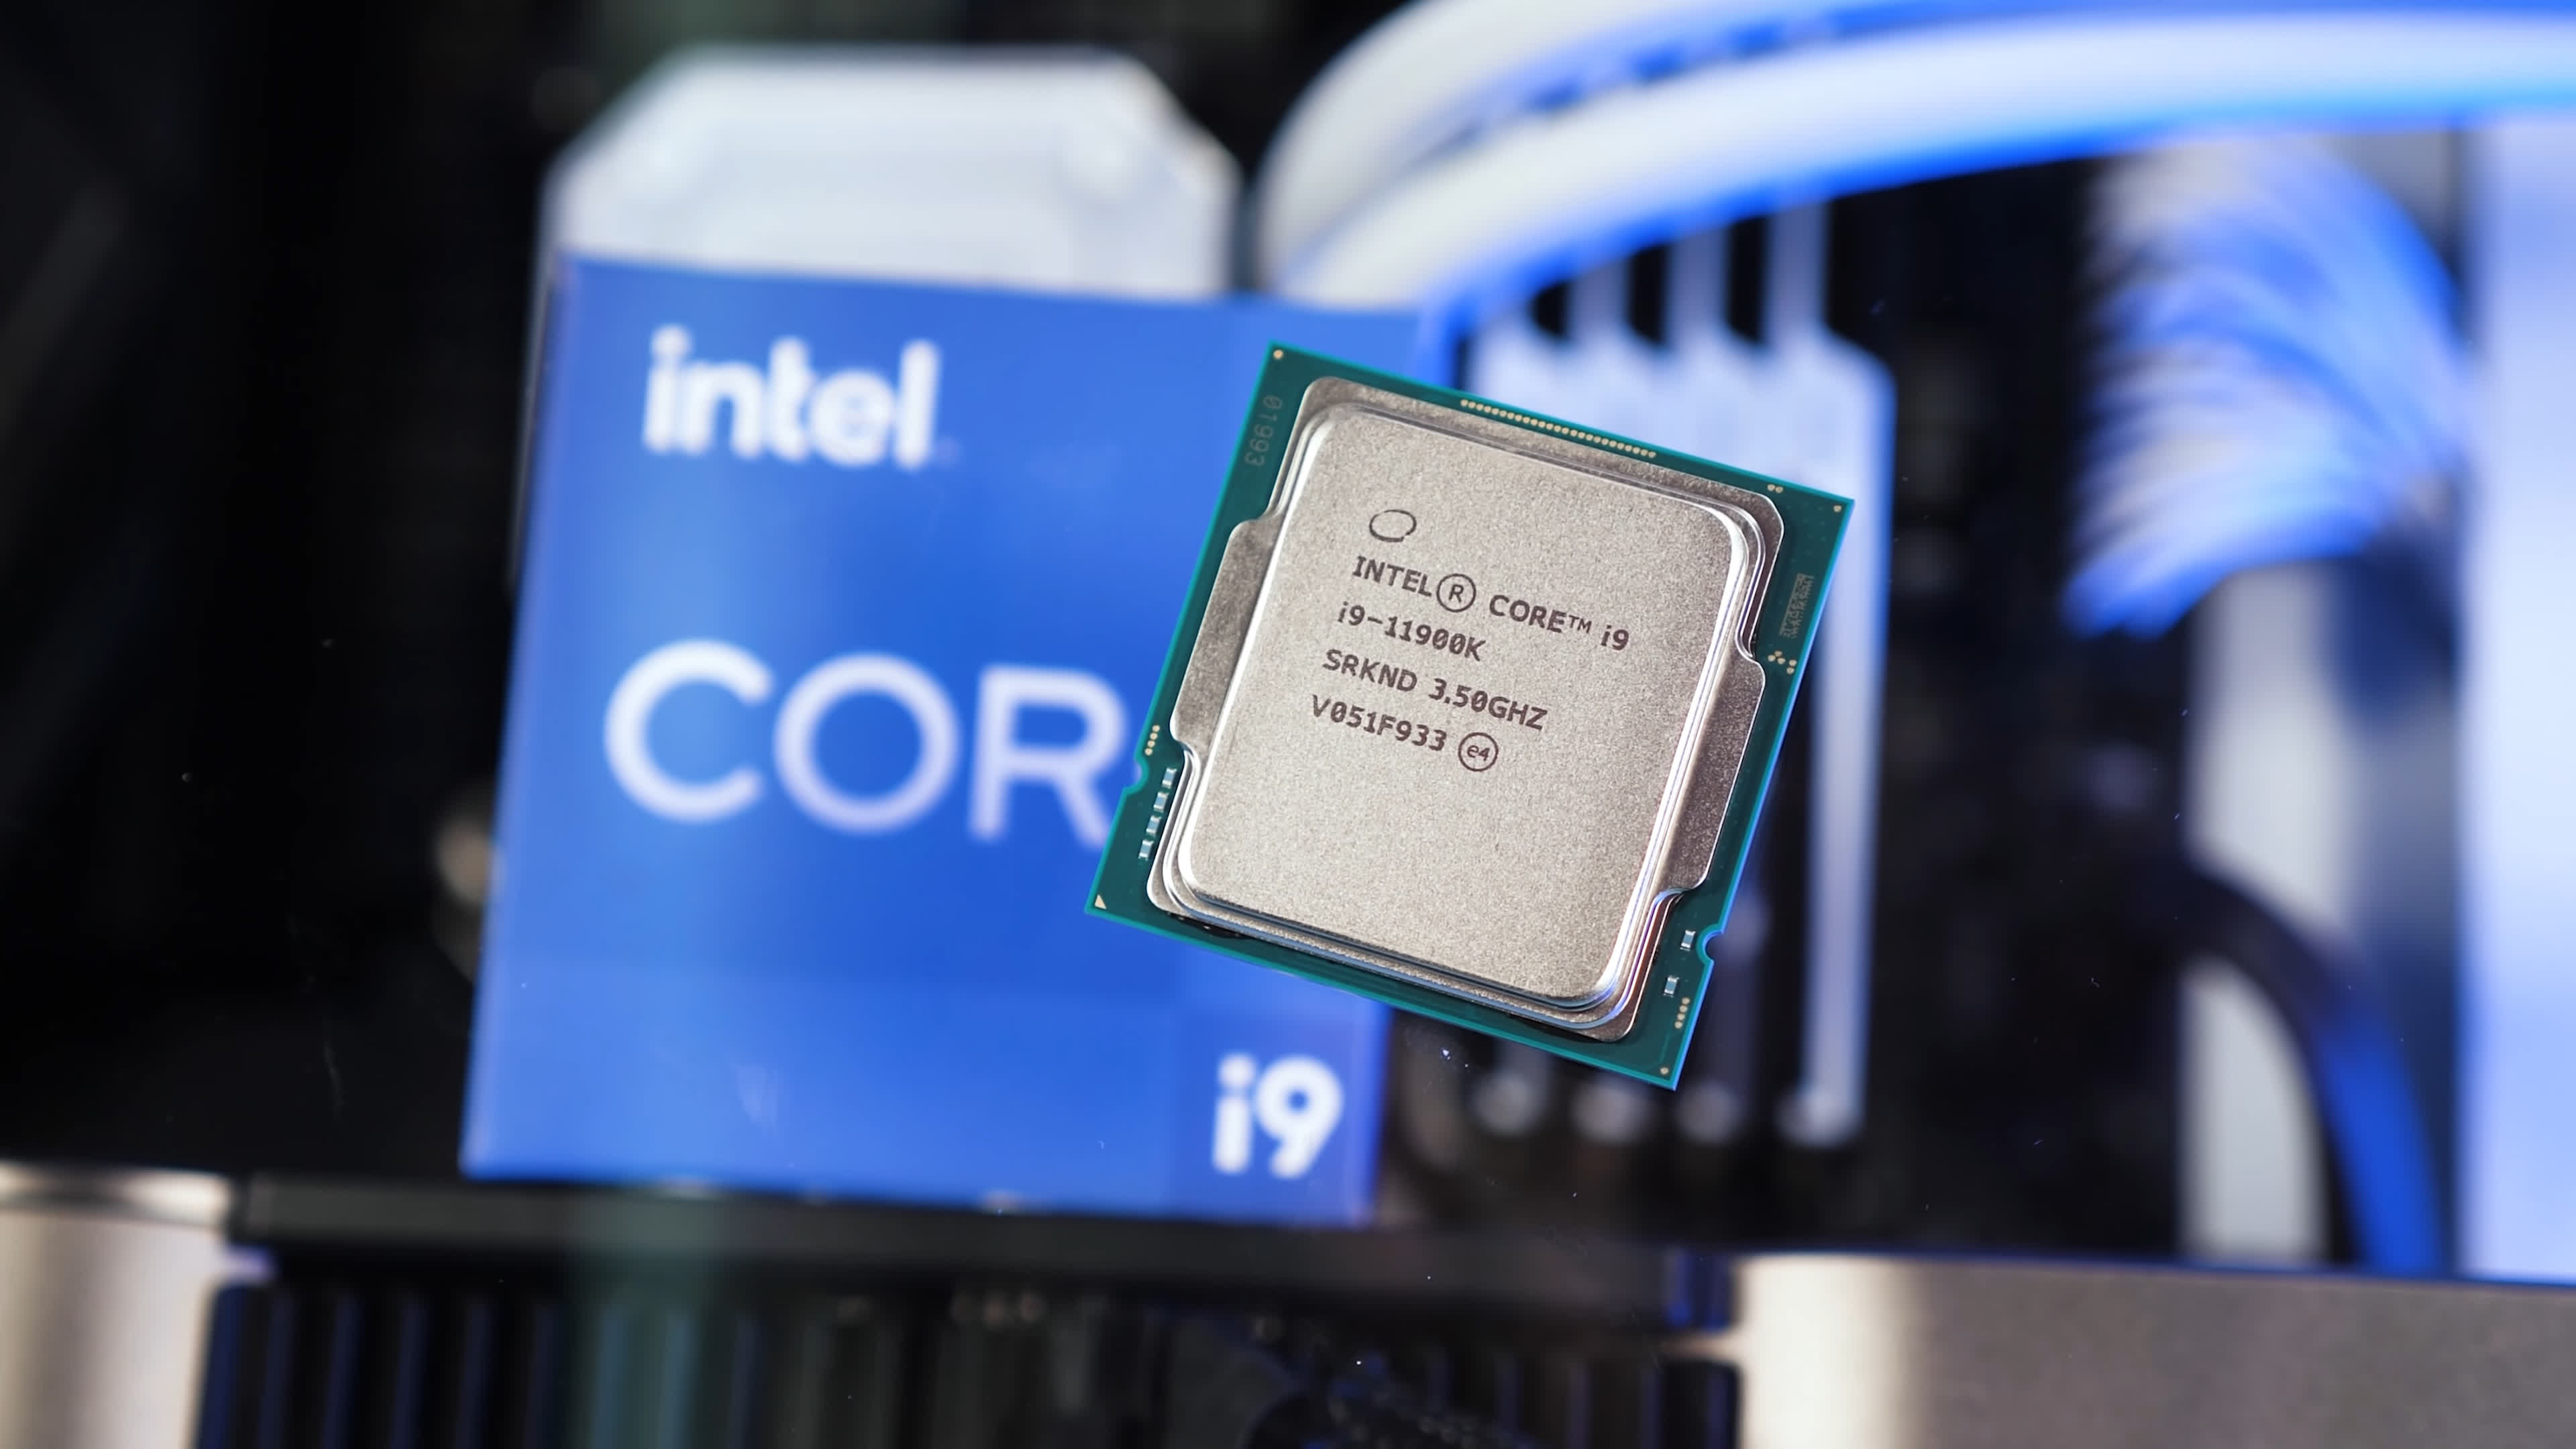 Intel's secret Core i9-11900KB uses a different architecture on the 10nm node